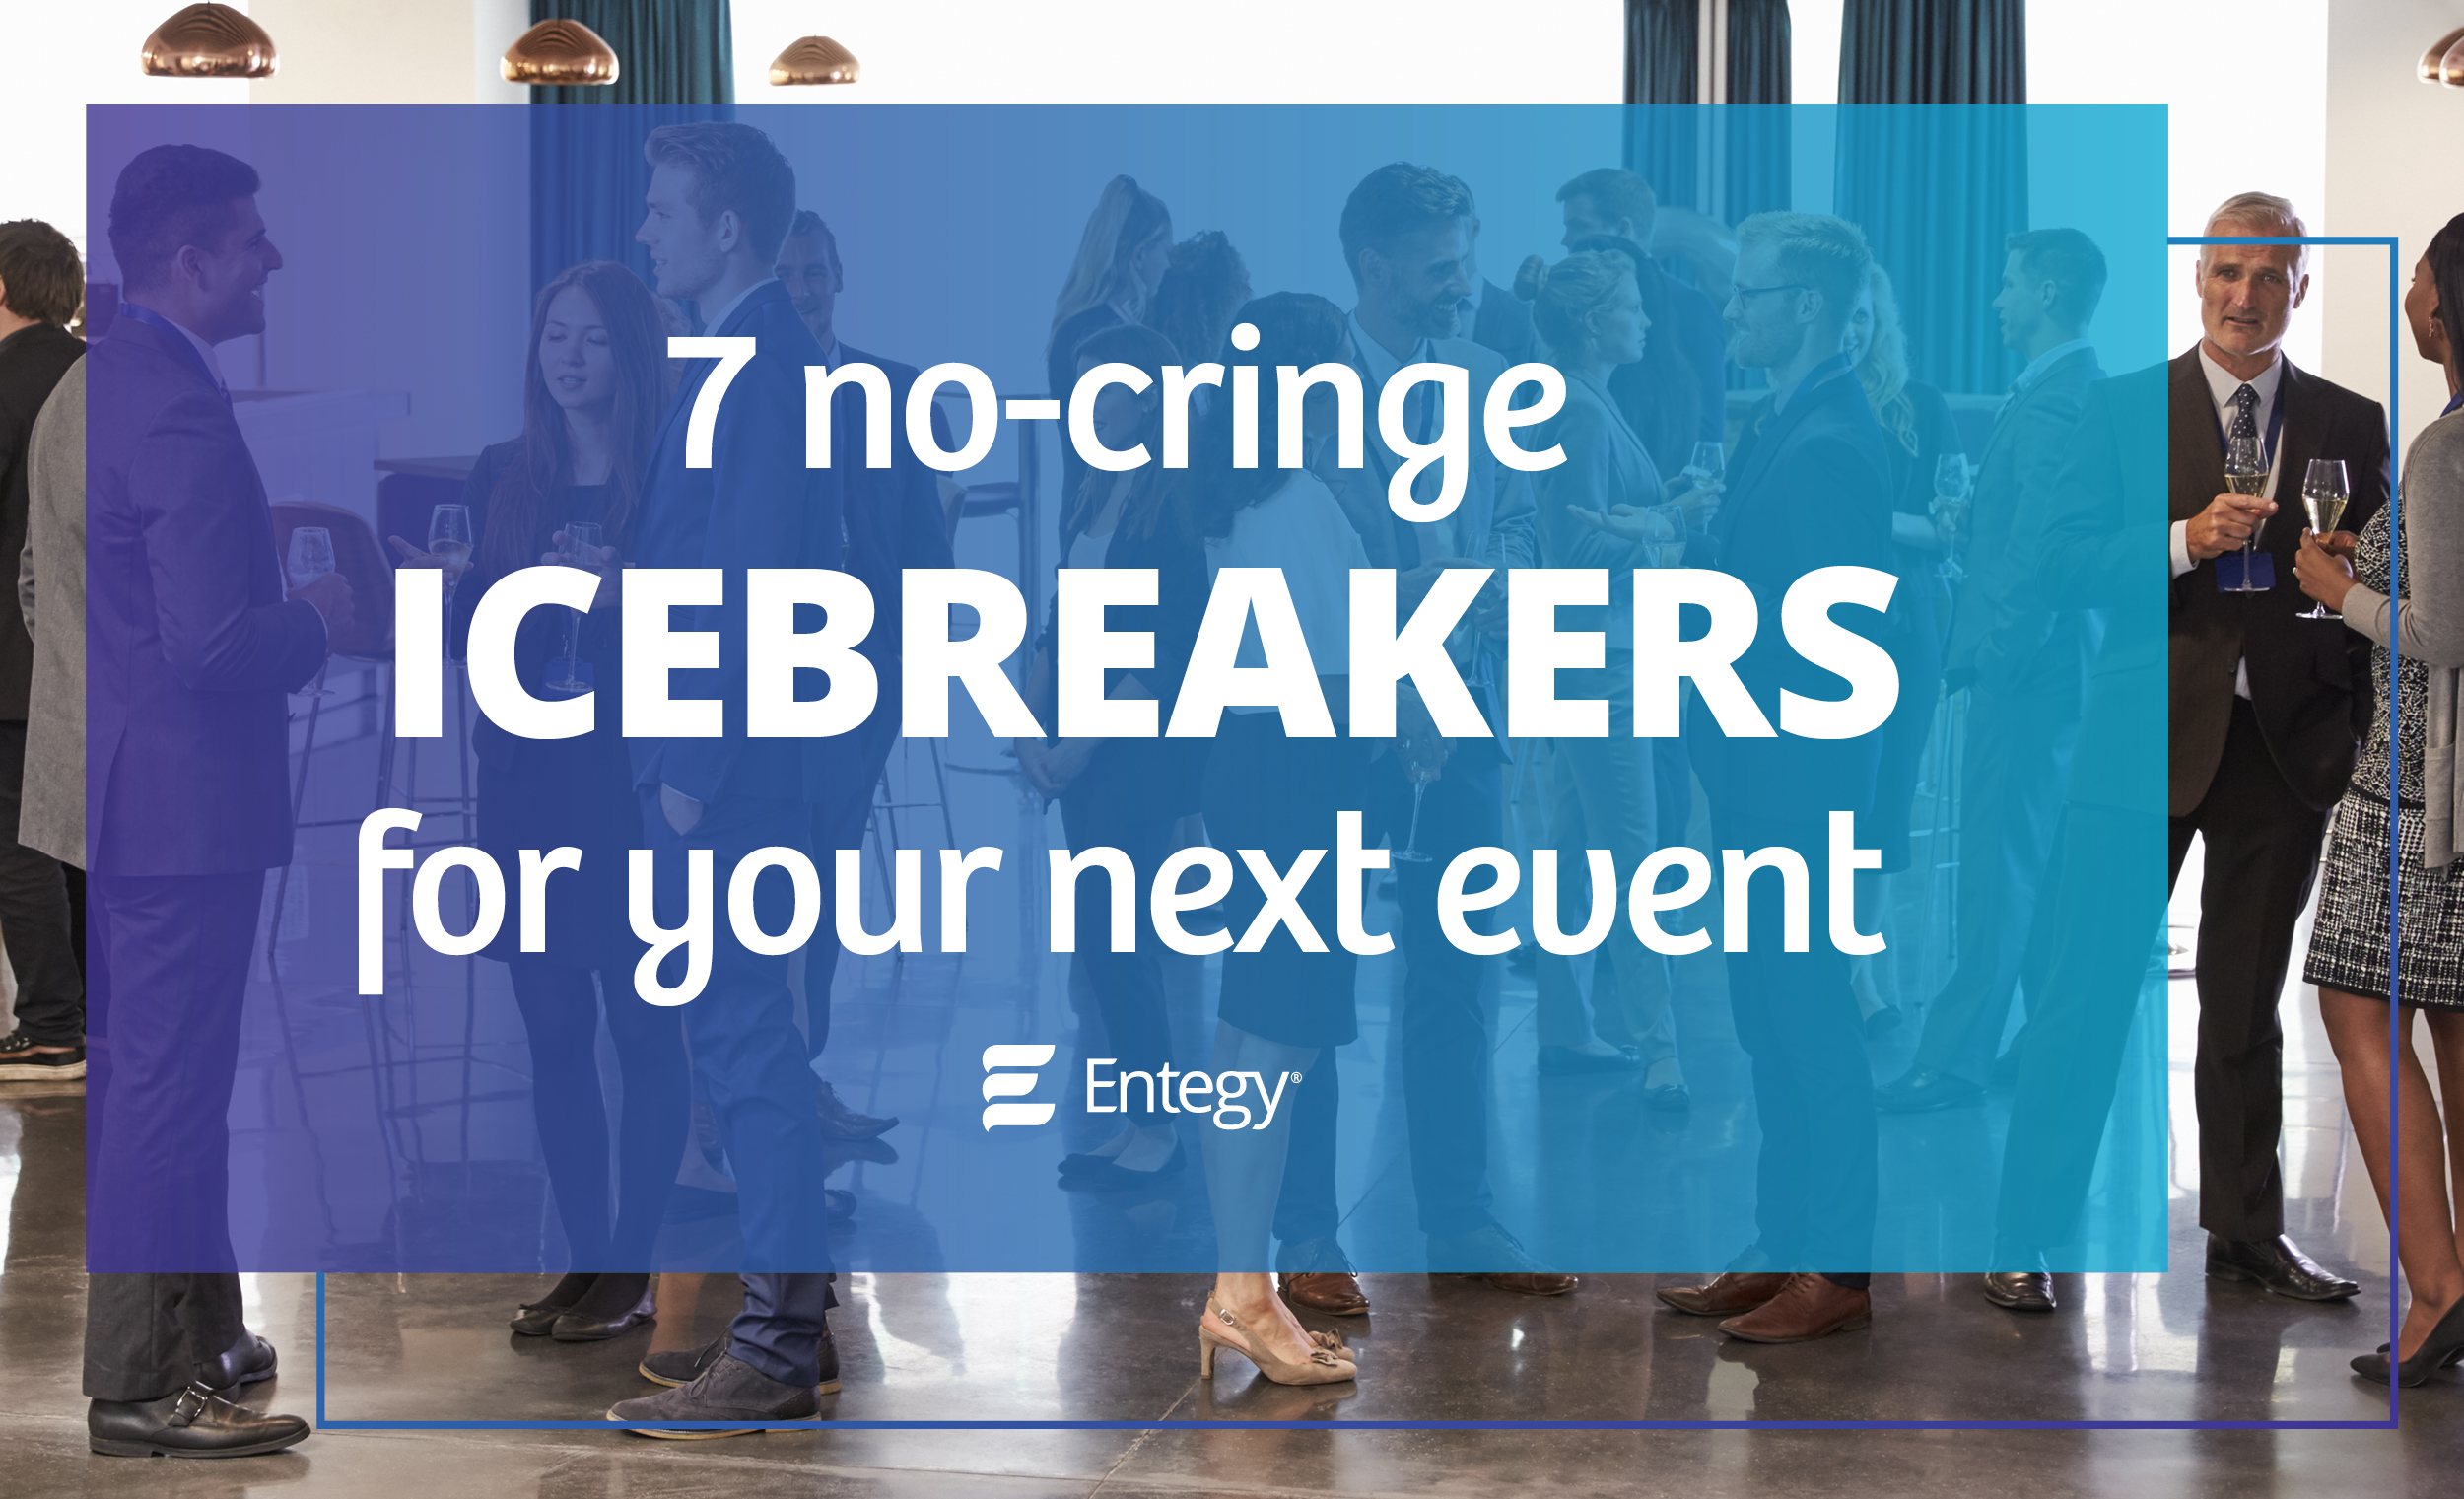 icebreakers blog graphic